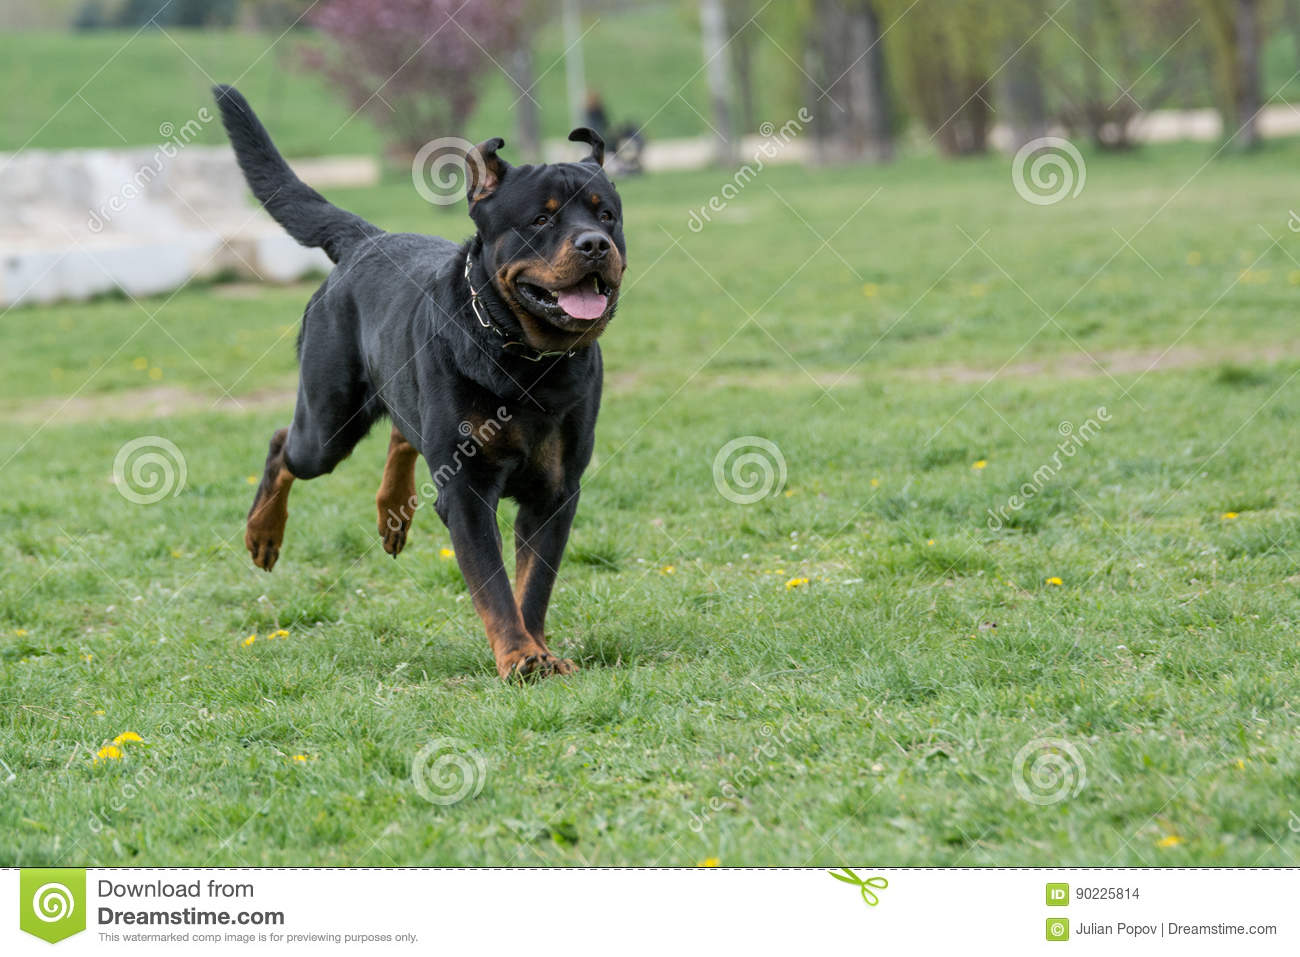 Rottweiler Running On The Grass Stock Photo Image Of Dangerous